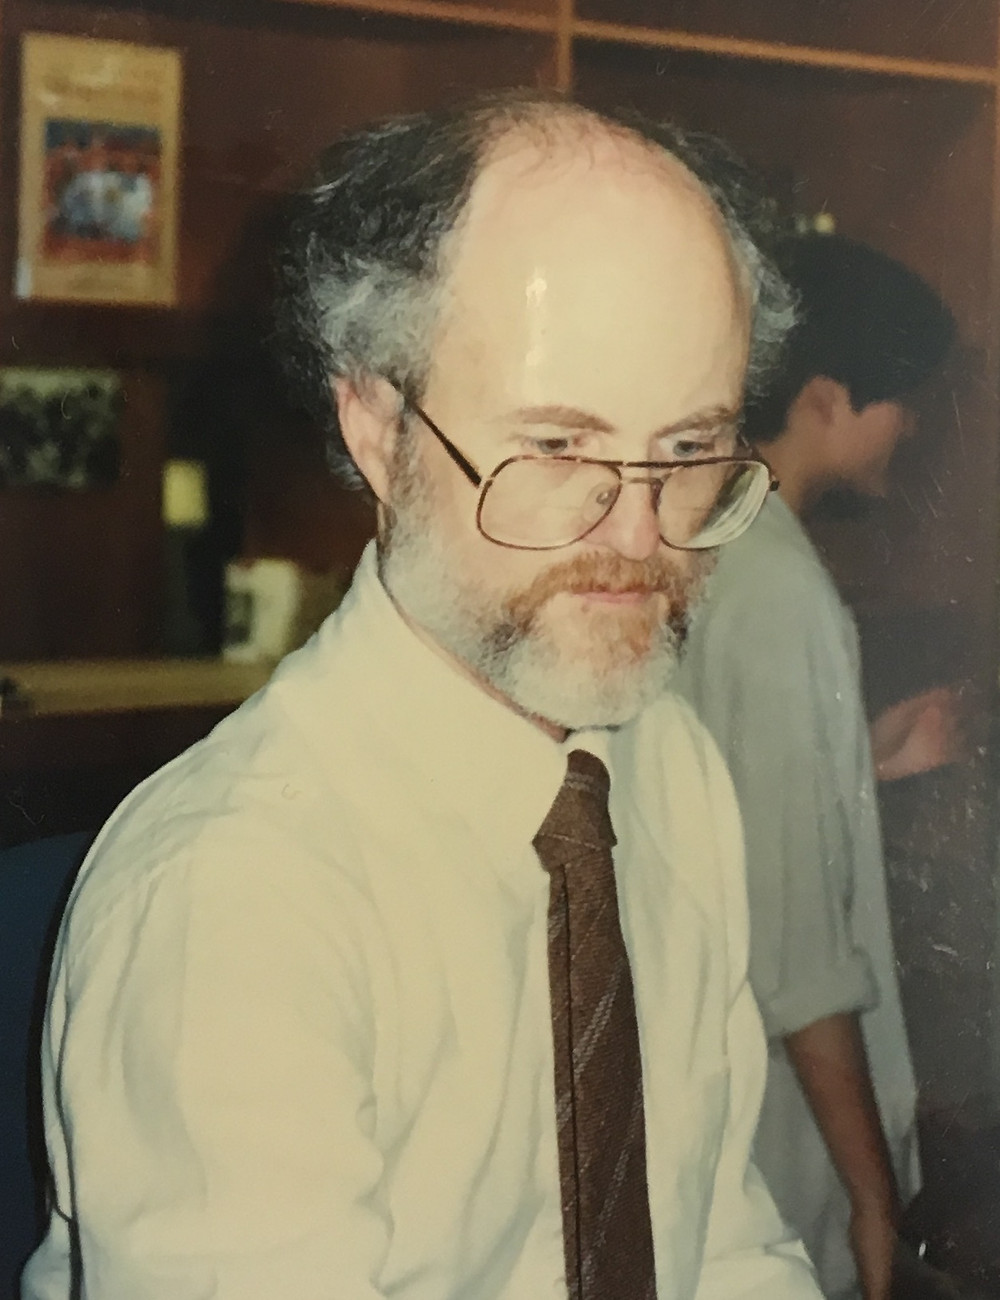 Alan on opening day of the current building in 1996